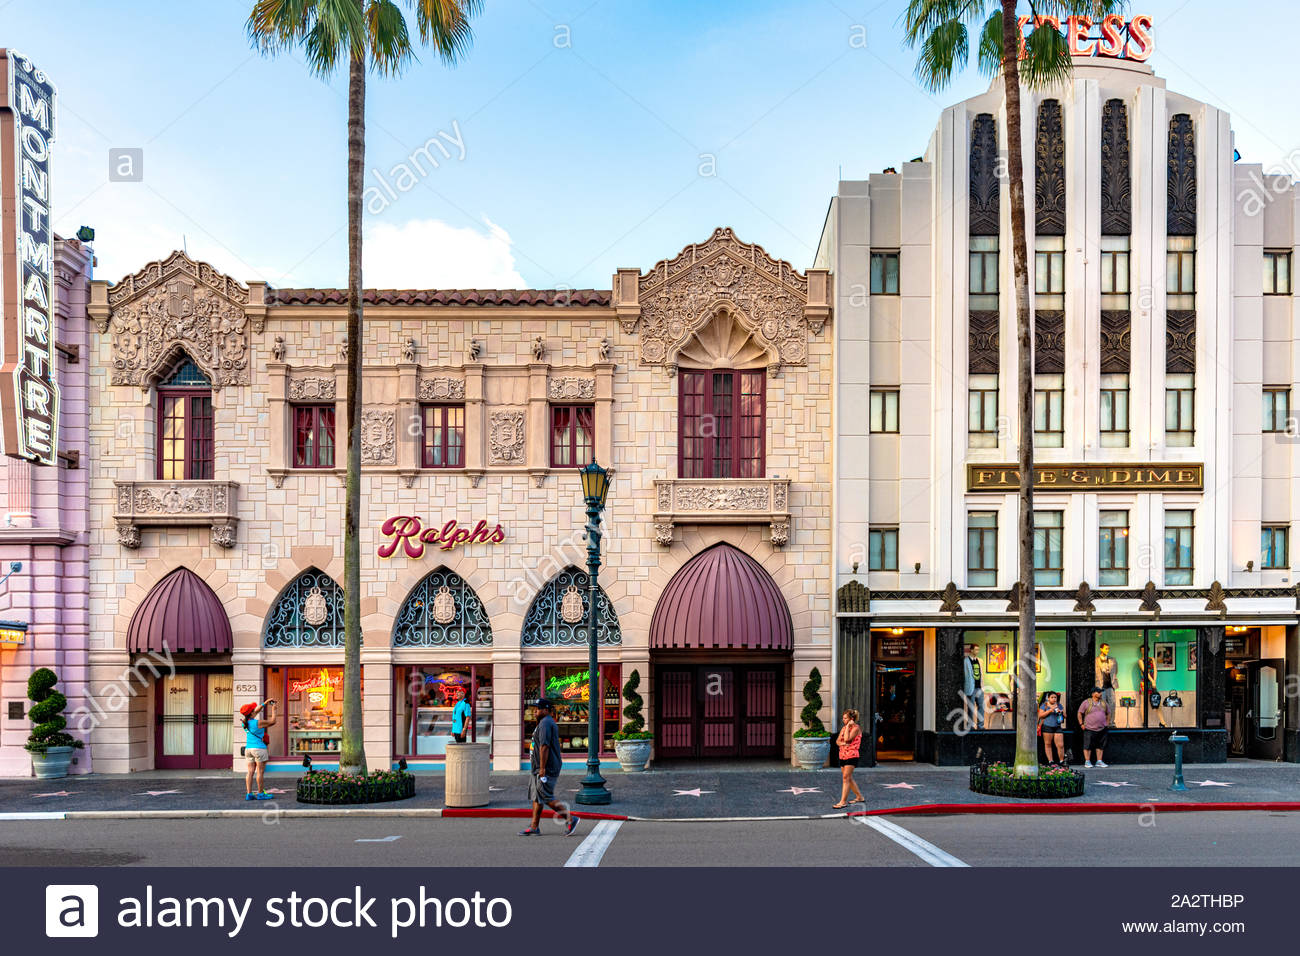 Orlando, Florida-July 20, 2019: Visiting the Universal Studios Theme Park. The place is a famous tourist attraction. Stock Photo